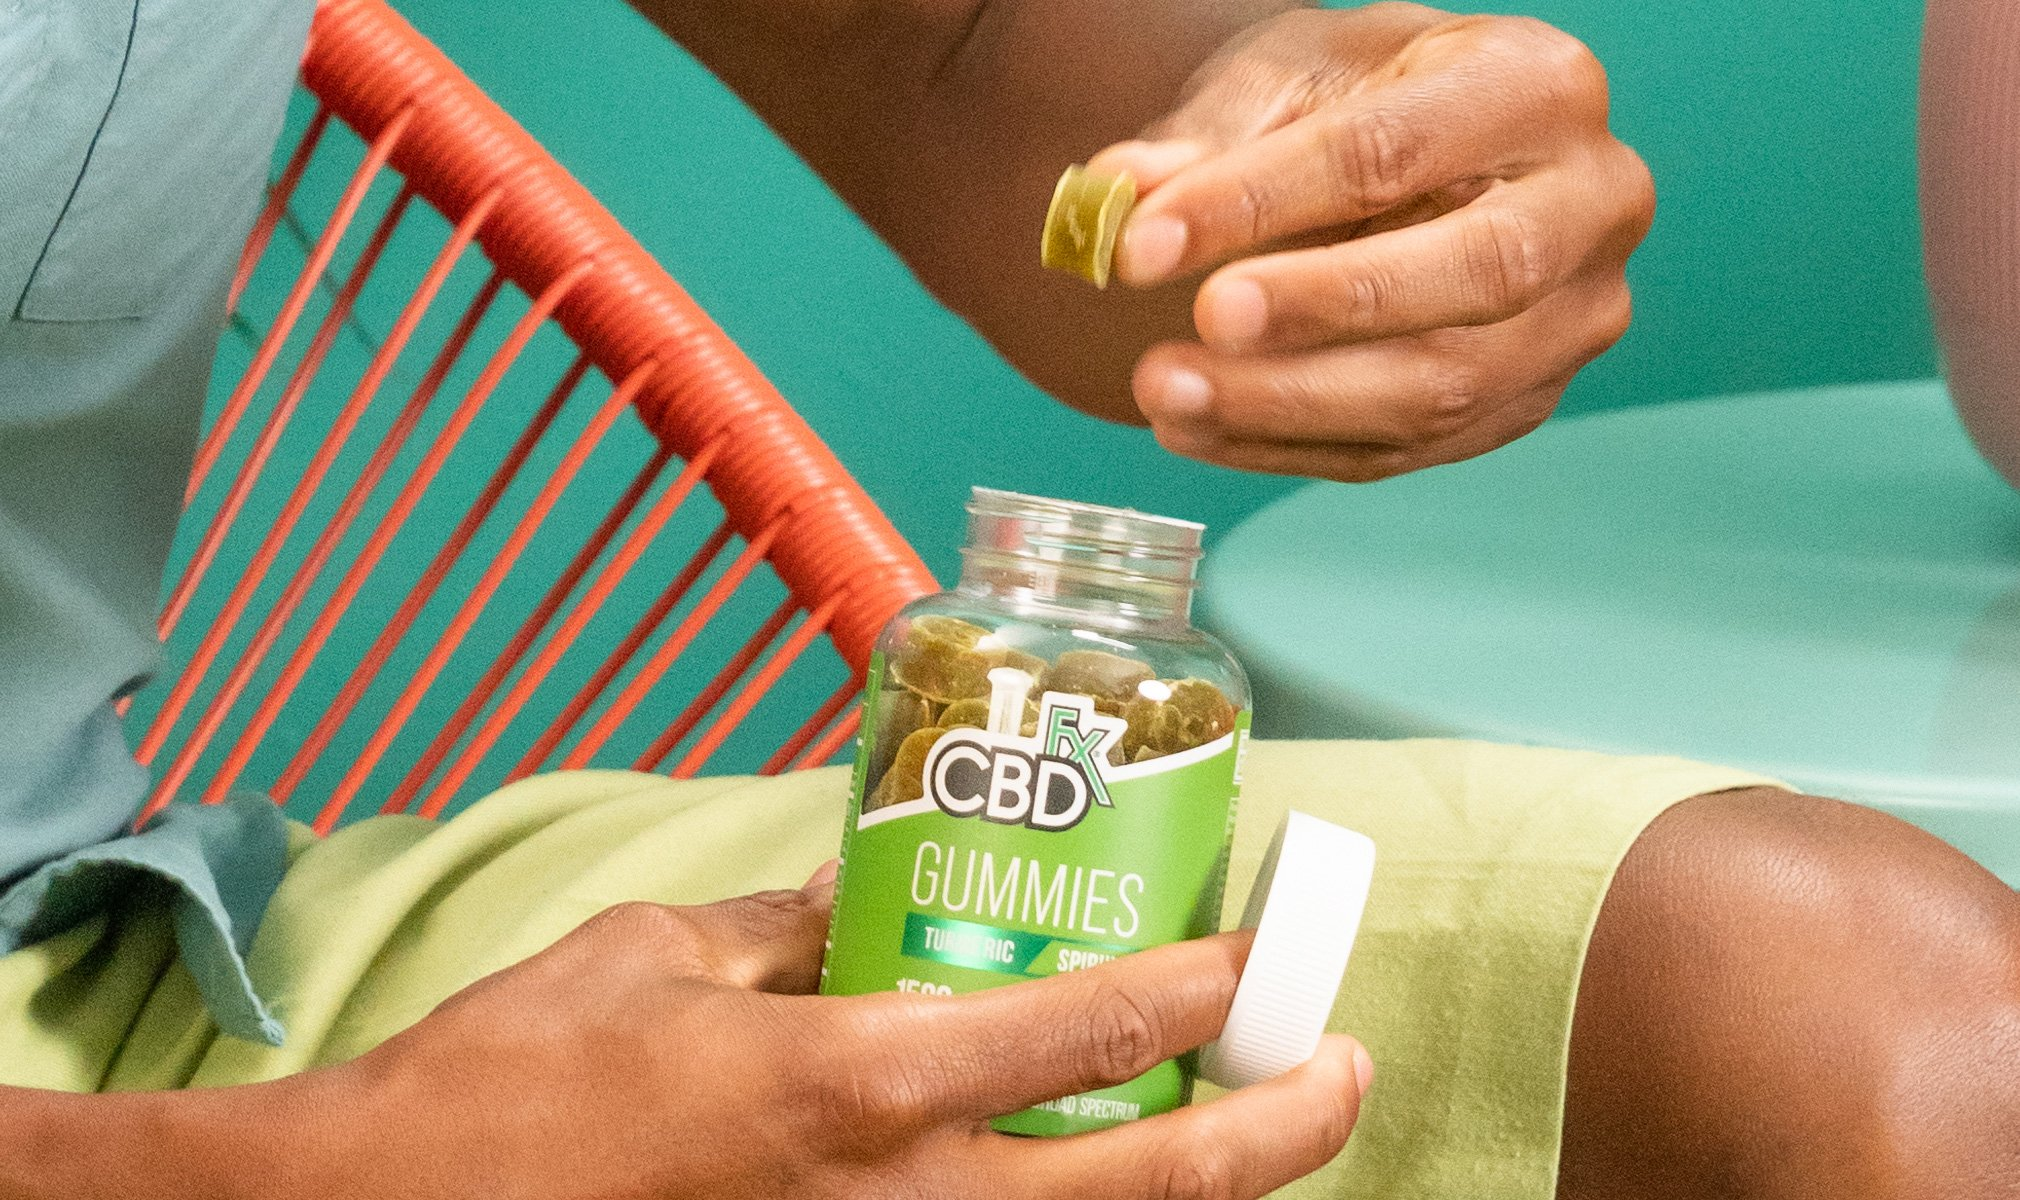 CBD Gummies At Home- Top Recipes You Must Try